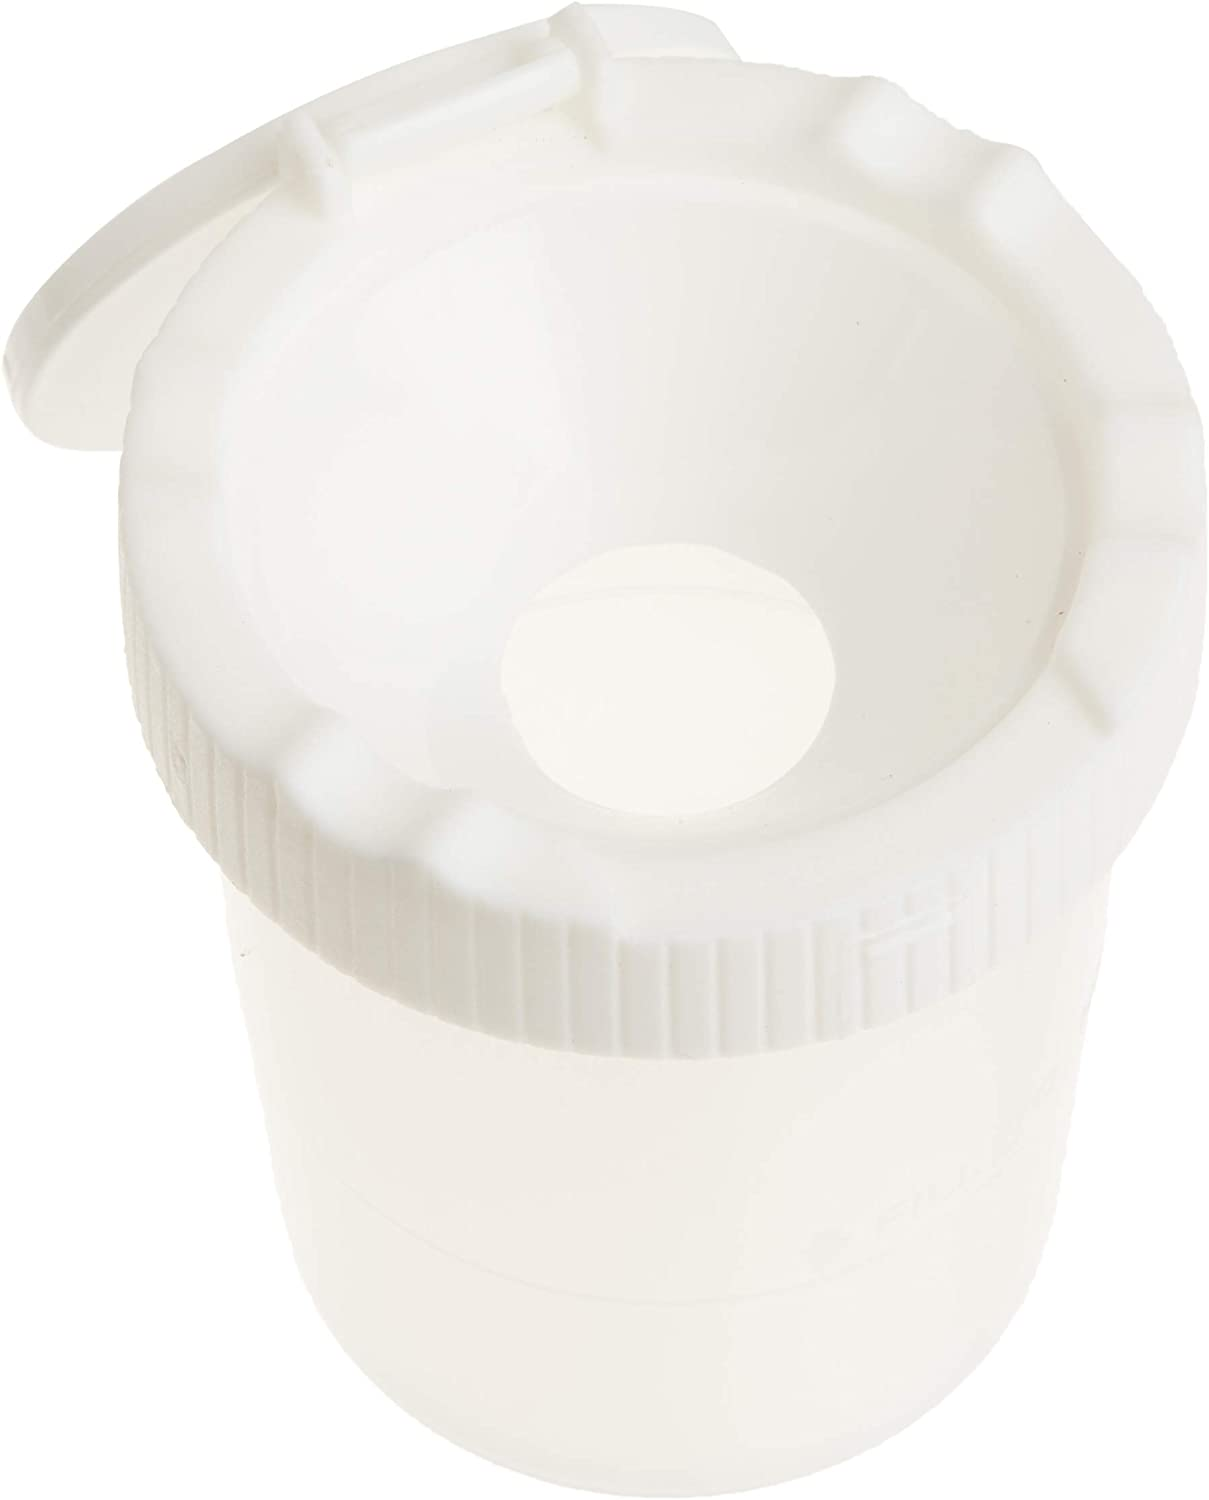 Sargent Art 22-1697 Non-Spill Paint Cups White 1, 12 Count 12 Count